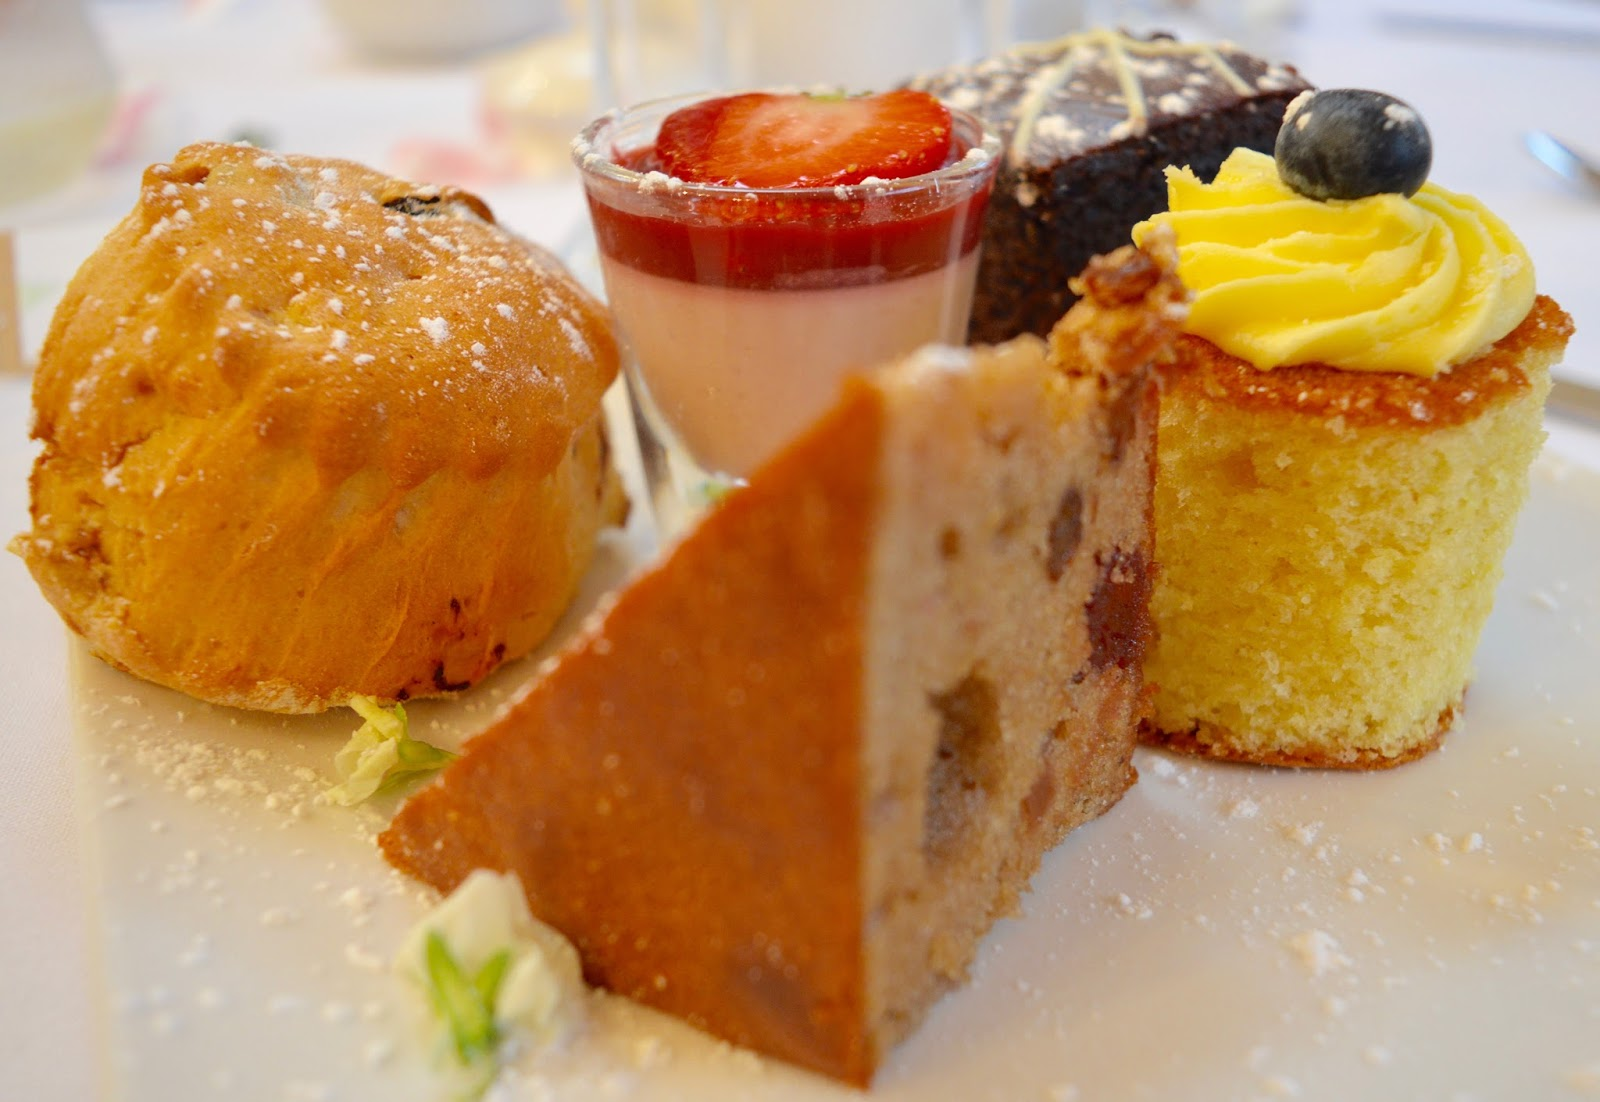 Weddings at The Parlour at Blagdon in Northumberland - Afternoon Tea Wedding Breakfast Cakes and Scone